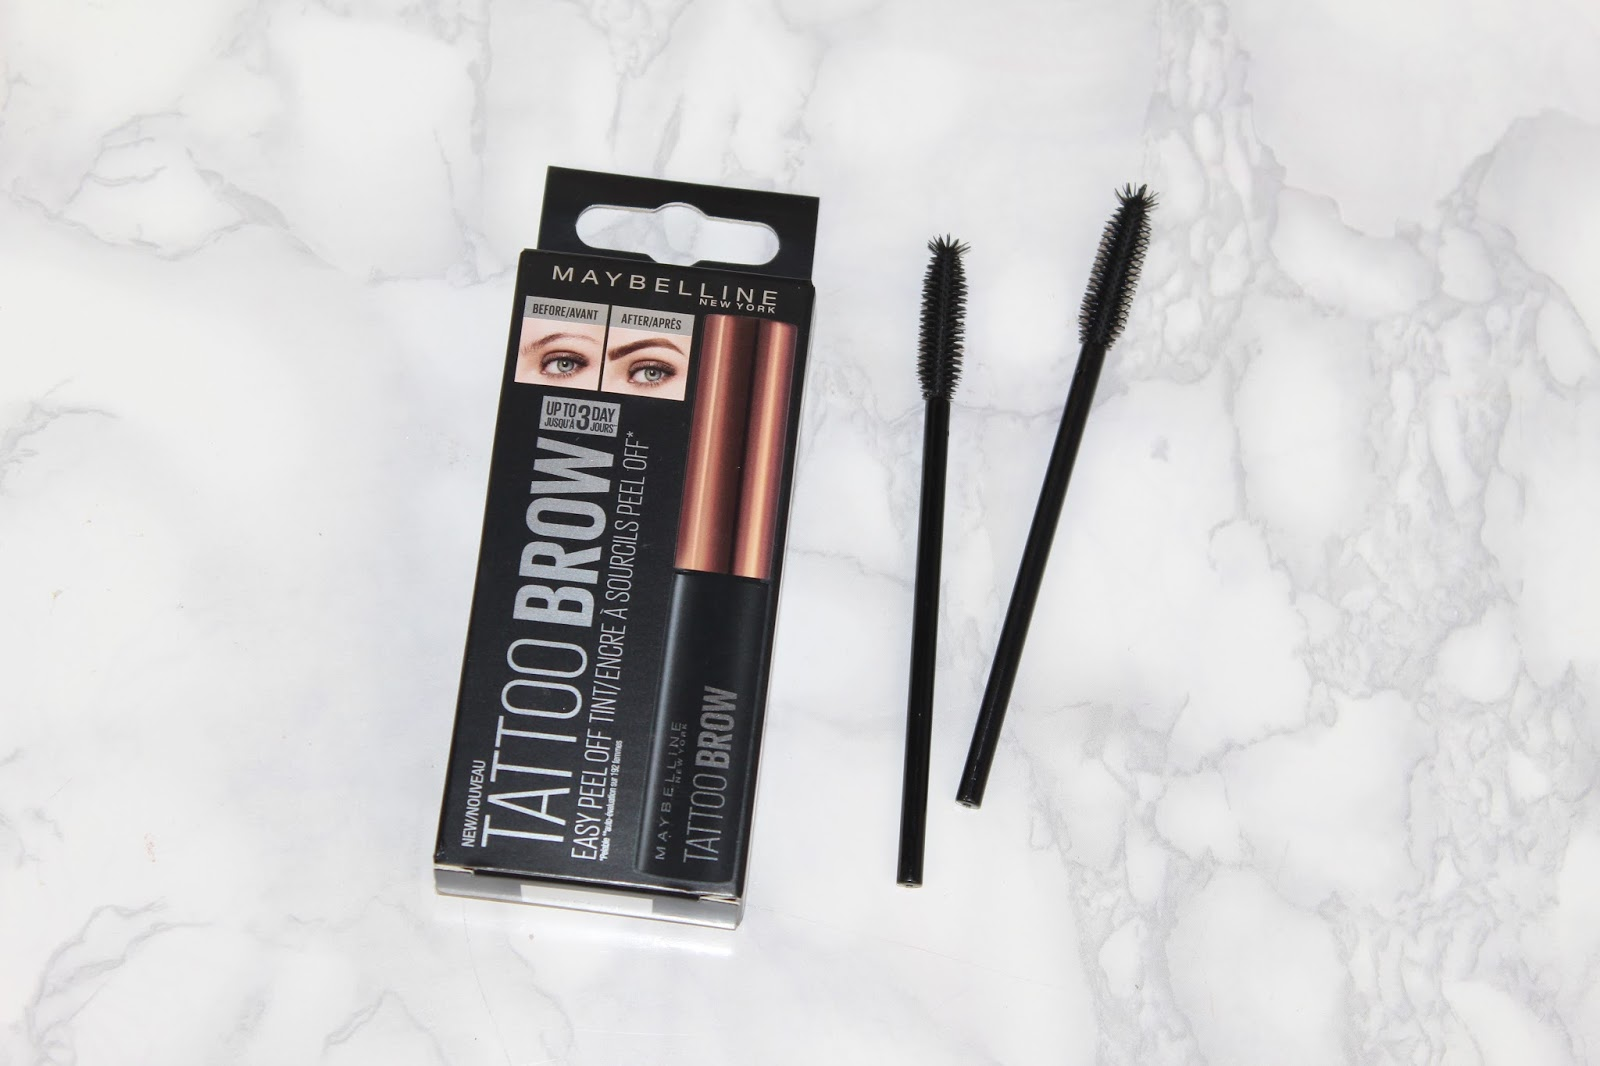 Maybelline Tattoo Brow Review And Photos Pink Paradise Beauty